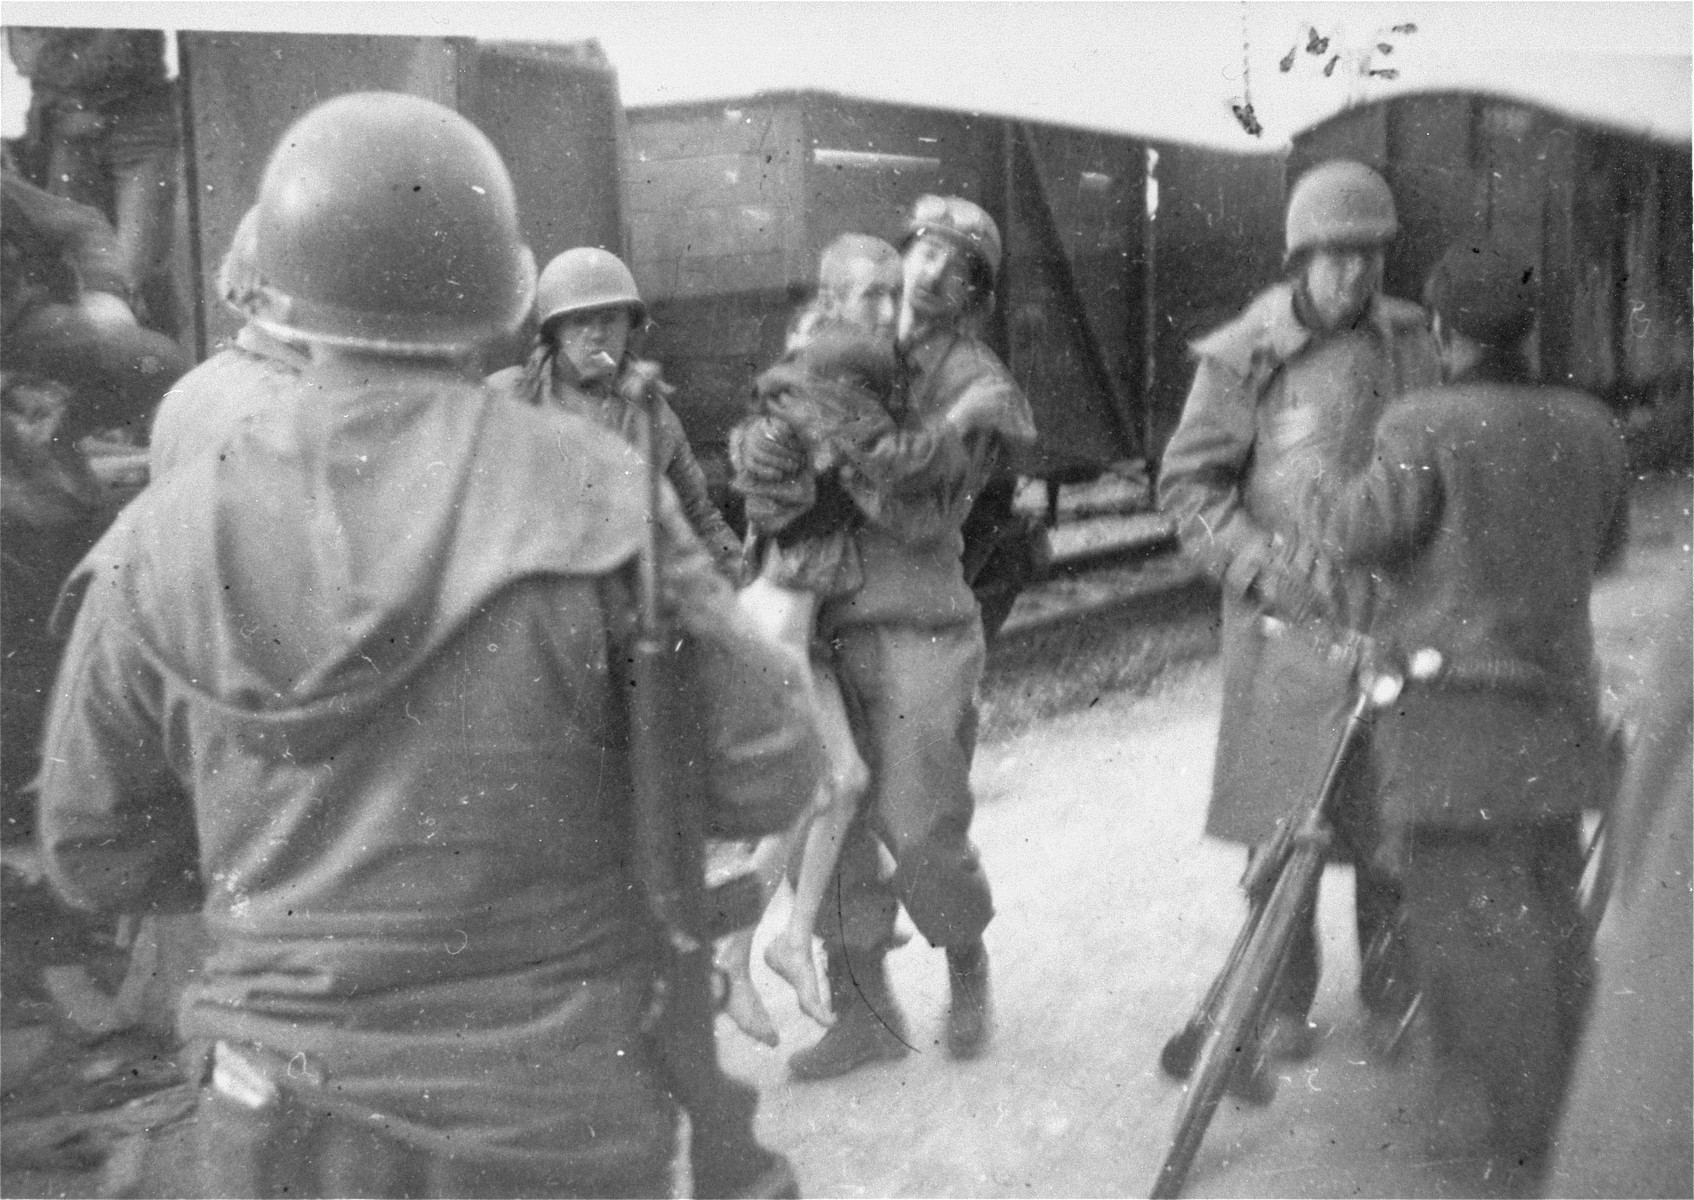 American soldiers remove one of the few survivors from the Dachau death train.  Pictured carrying the survivor is T/4 Sgt. Tony Cardinale and Lieutenant Gerald C. Caskey can be seen speaking to the armed man on the right.